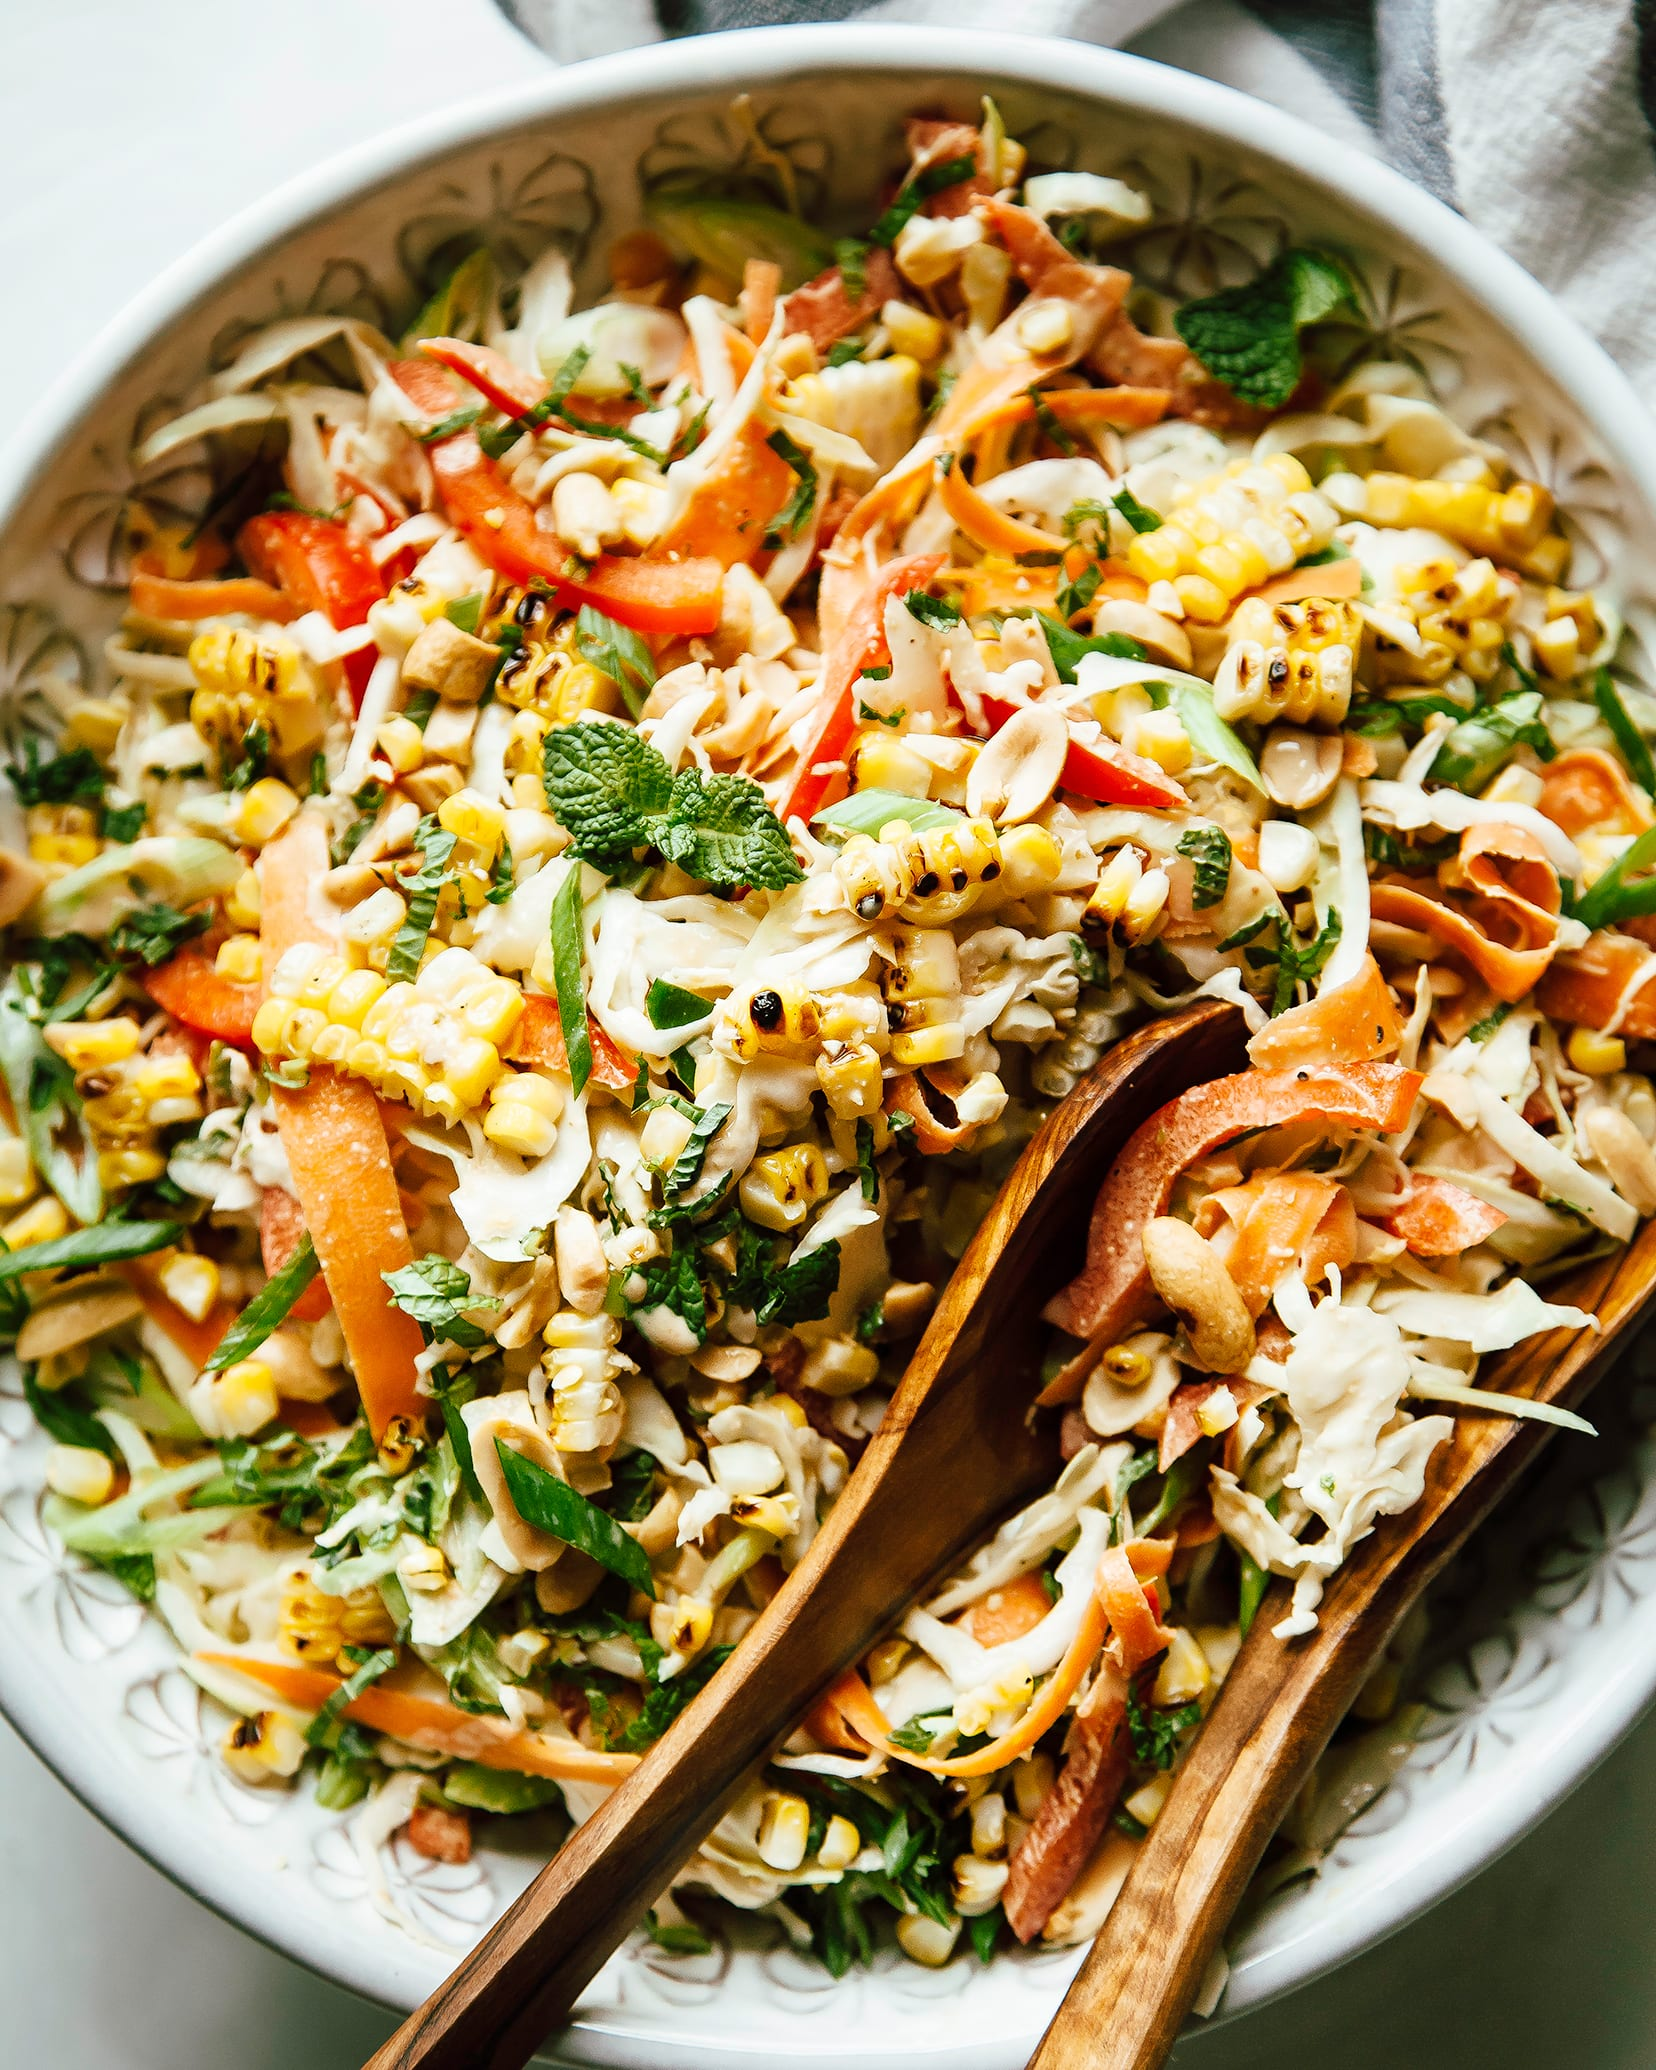 An up close, overhead shot of charred corn slaw with peanut butter lime dressing. The slaw is served in a white patterned bowl with wood serving tongs.